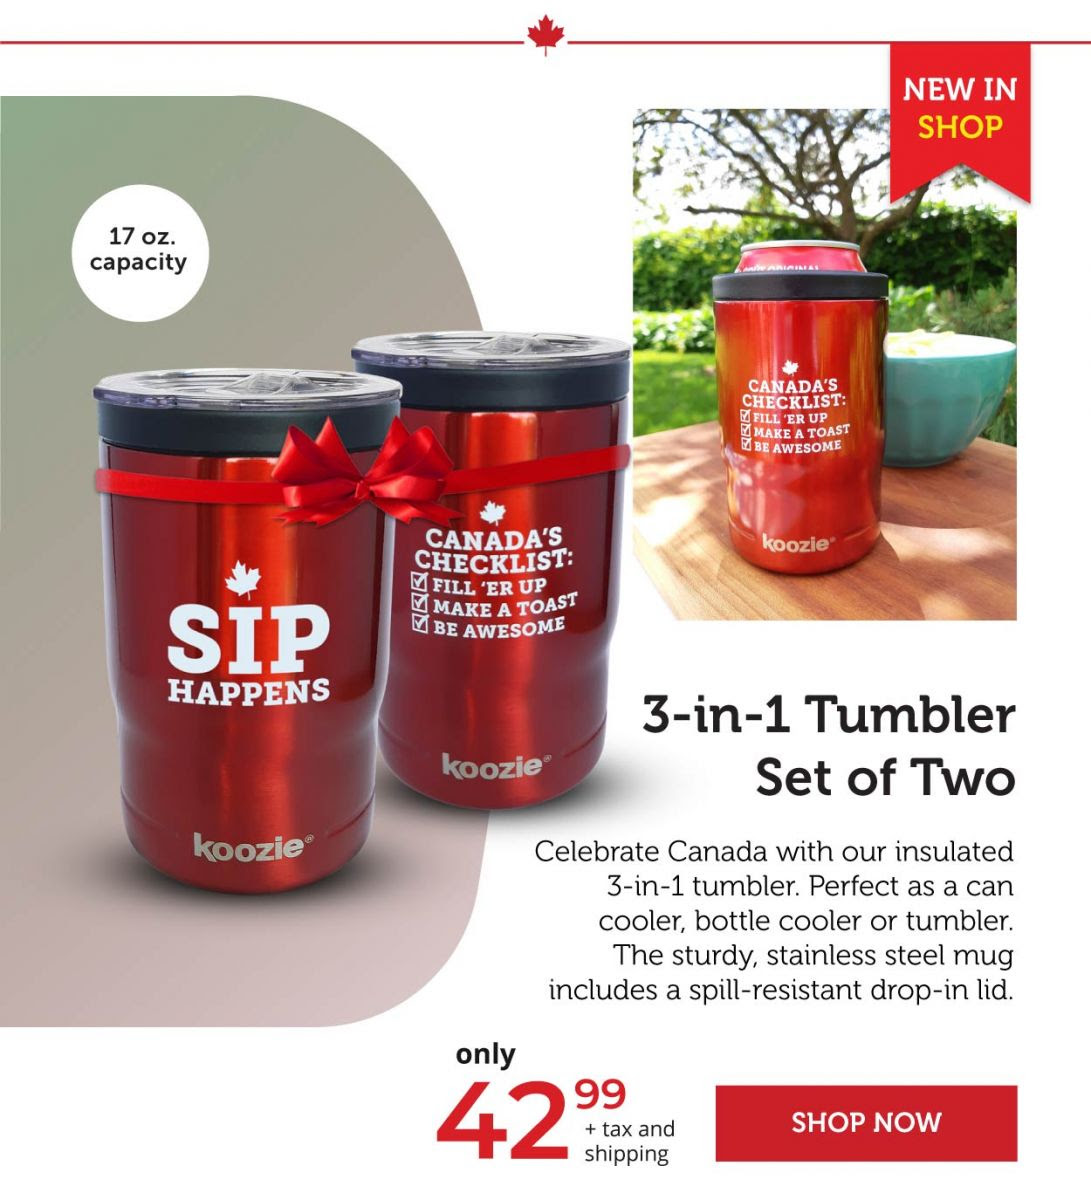 3-in-1 Tumbler set of 2